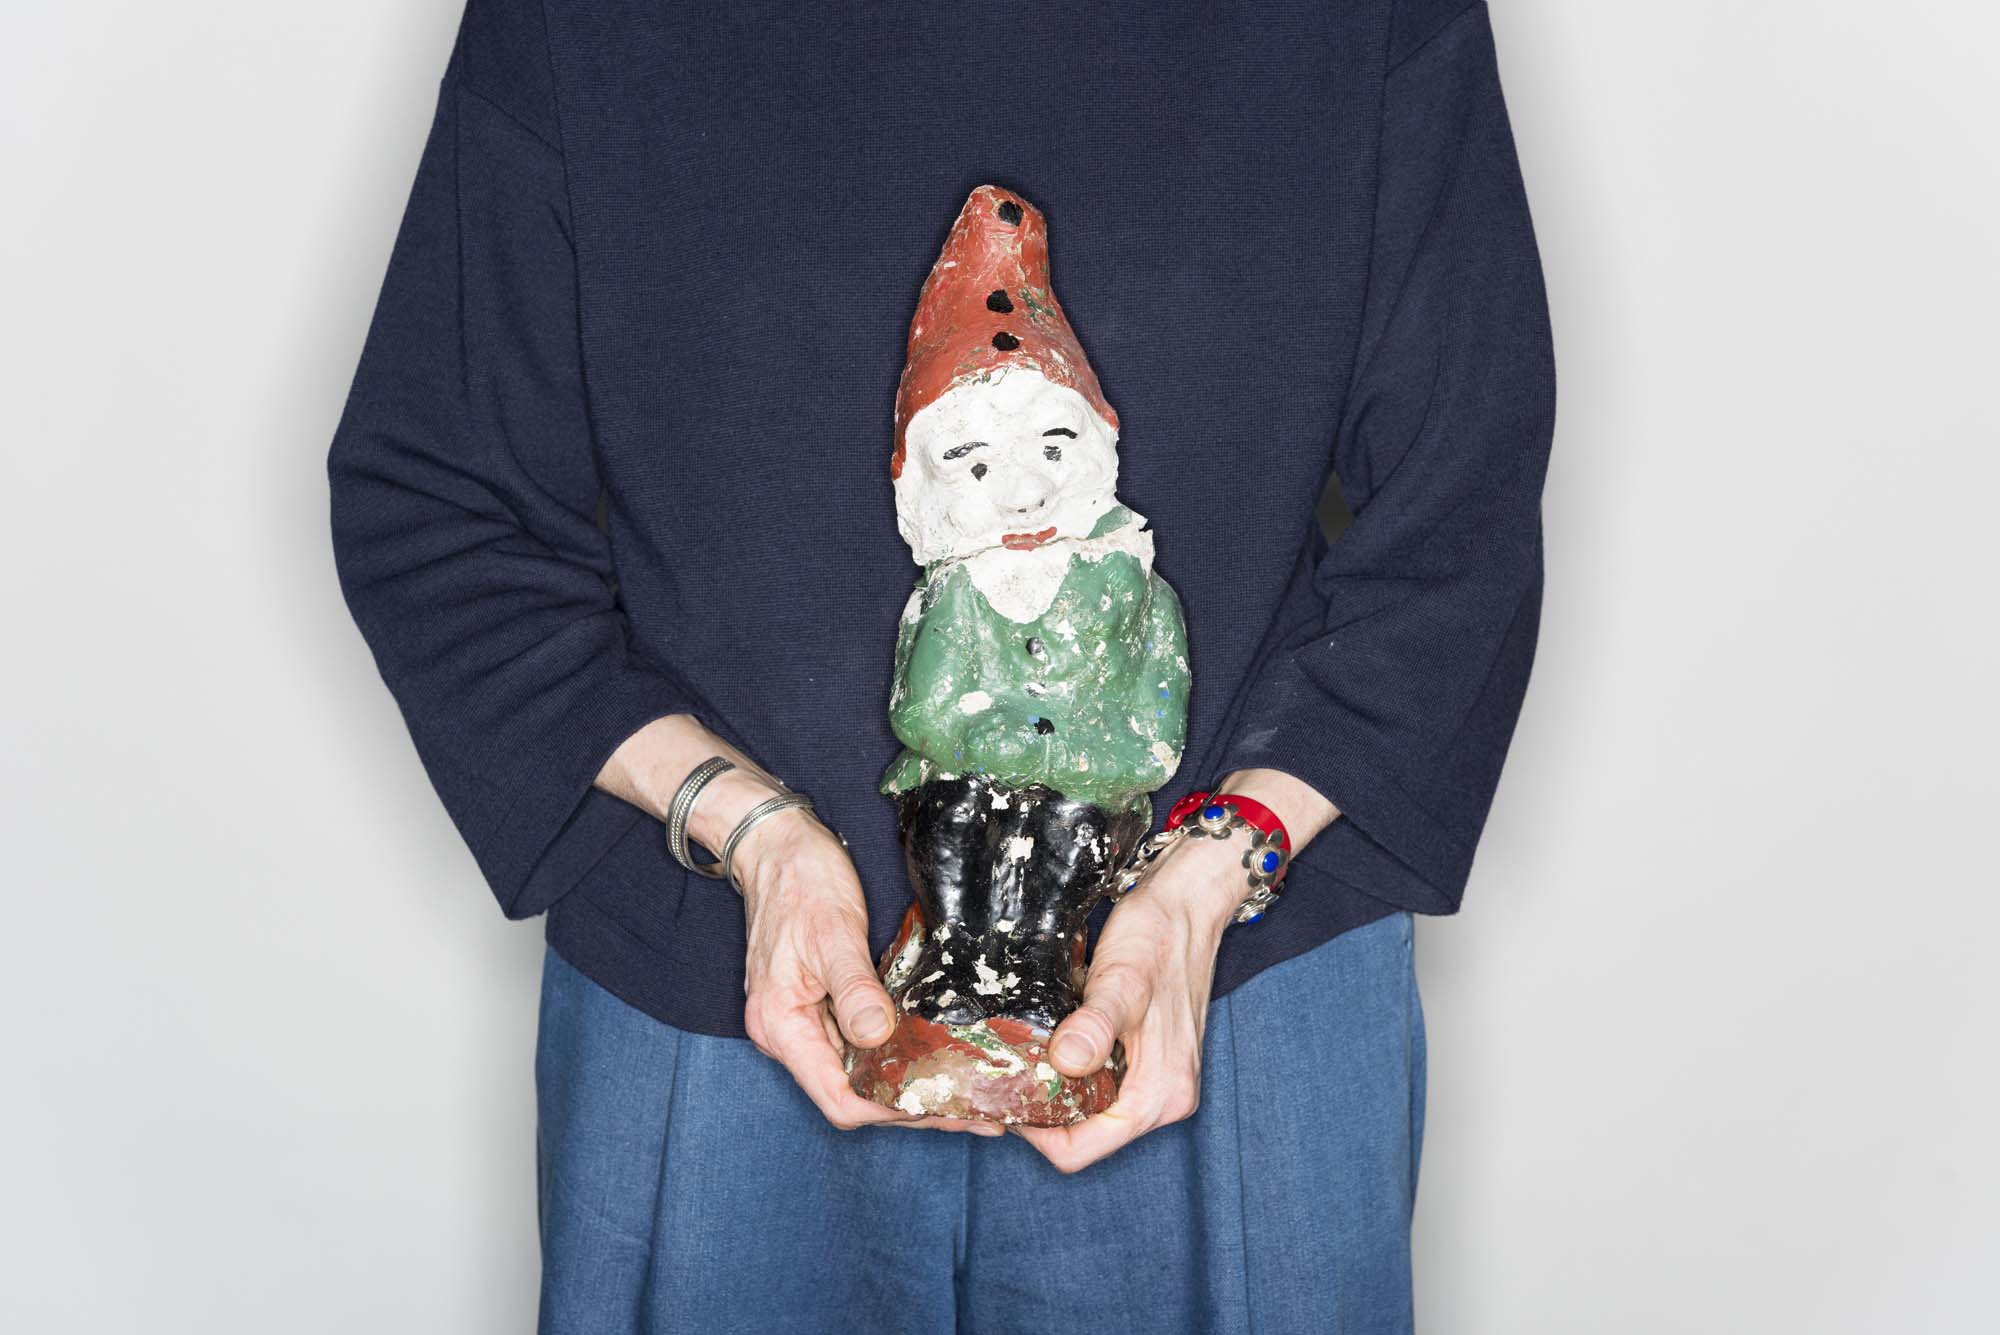 a cropped photo of a person holding a garden gnome